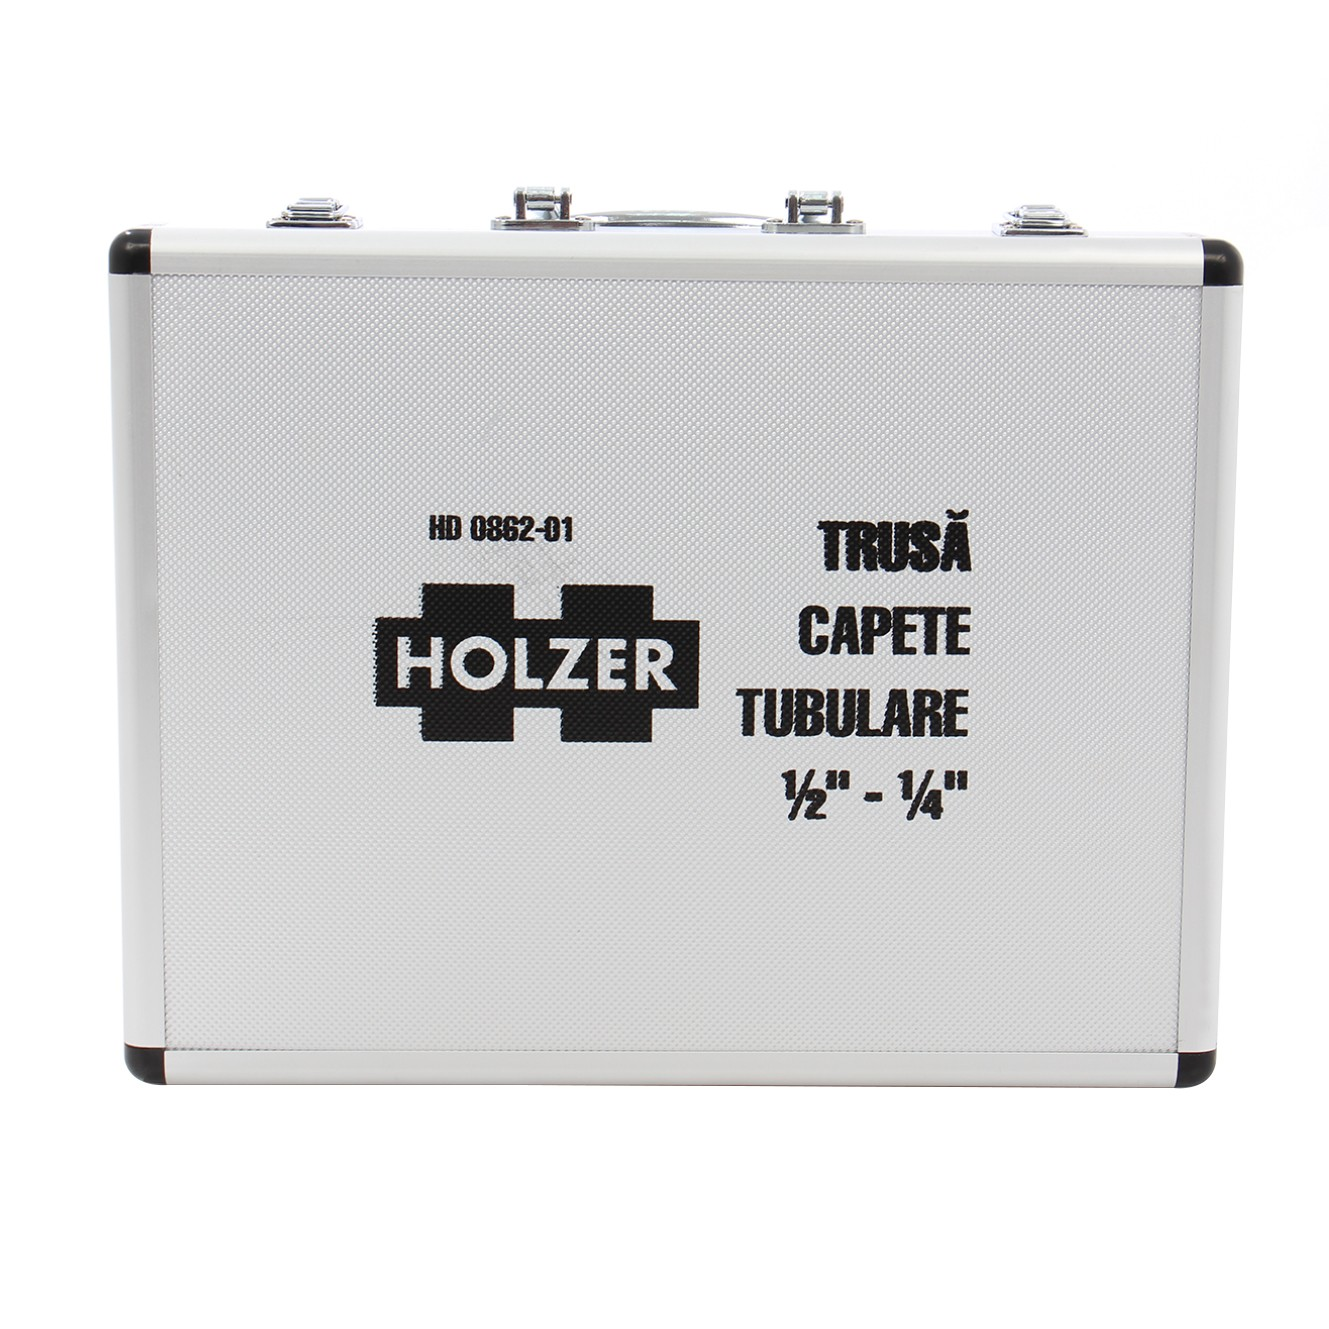 Trusa capete tubulare 1/2 - 1/4 inch Holzer, 62 piese